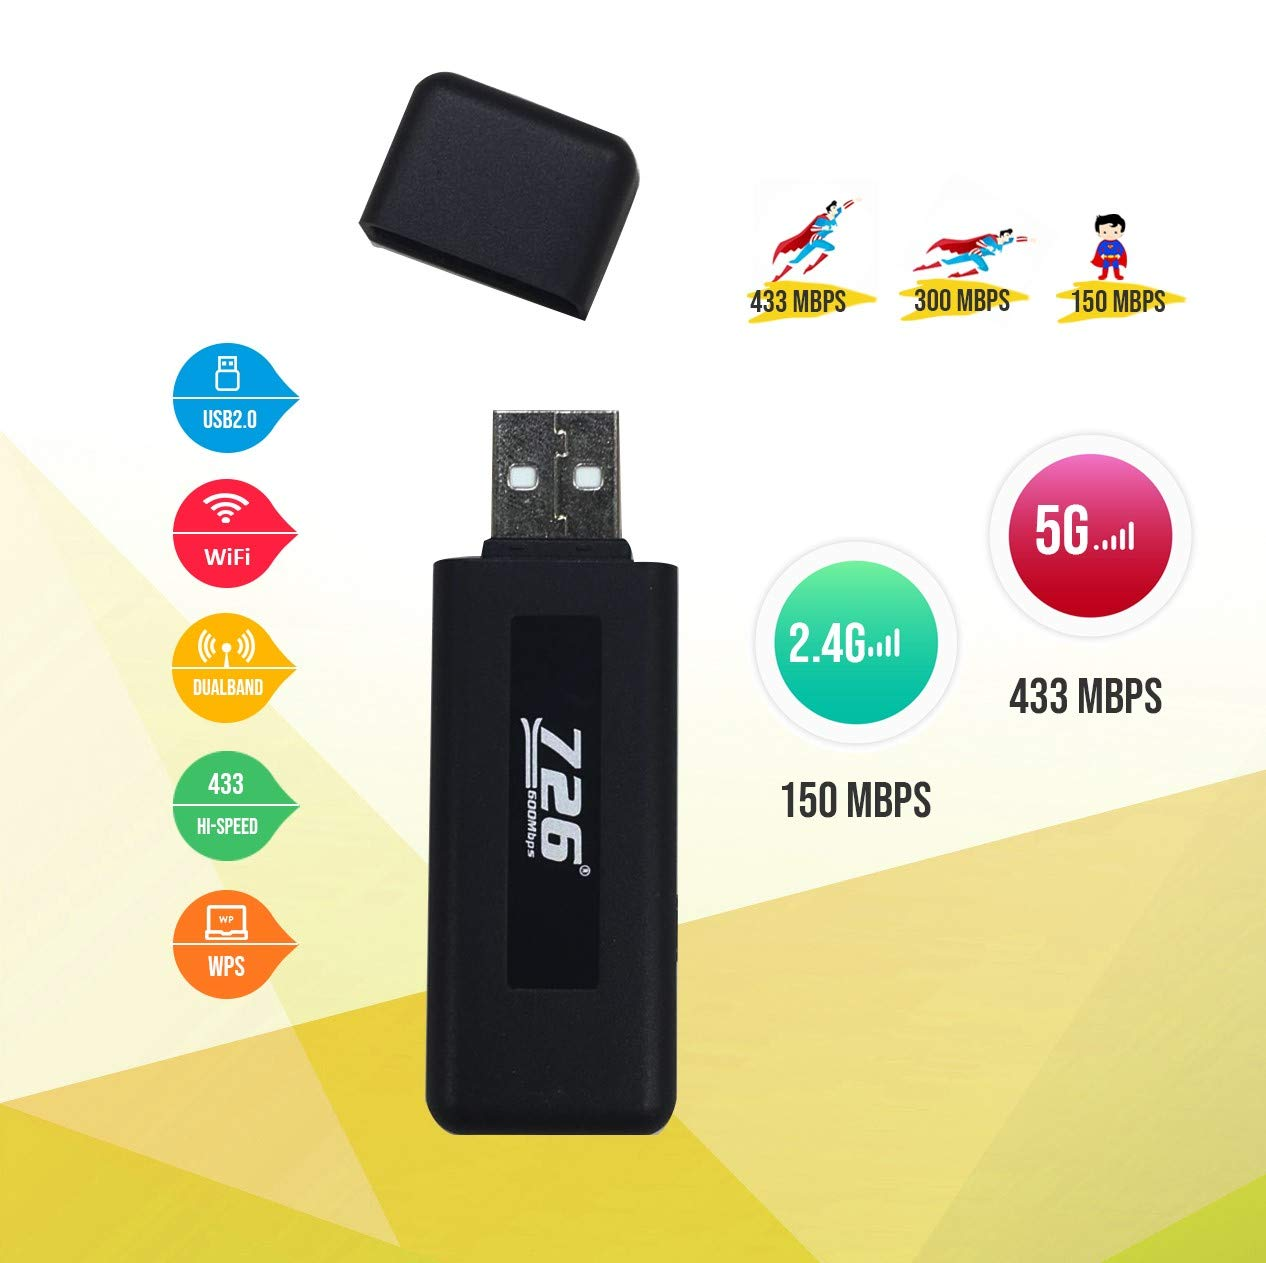 MAG-W600: WiFi Adapter 600Mbps WiFi Dongle Mini Dual Band 2.4G/5G USB Wireless Network Adapter for informir MAG